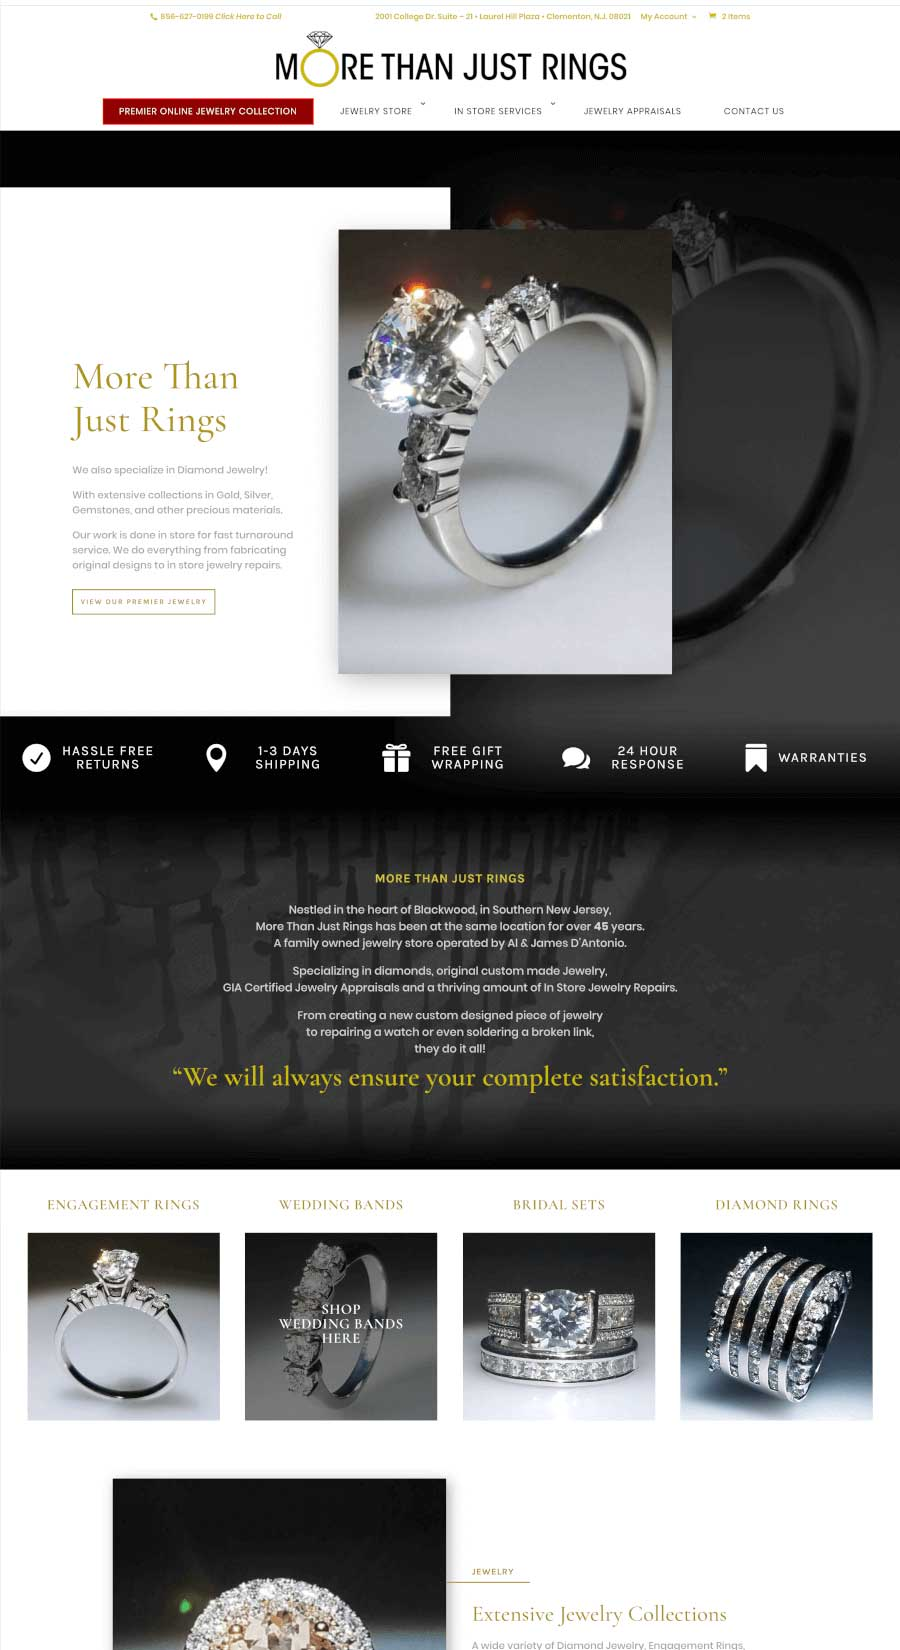 More Than Just Rings Landing Page